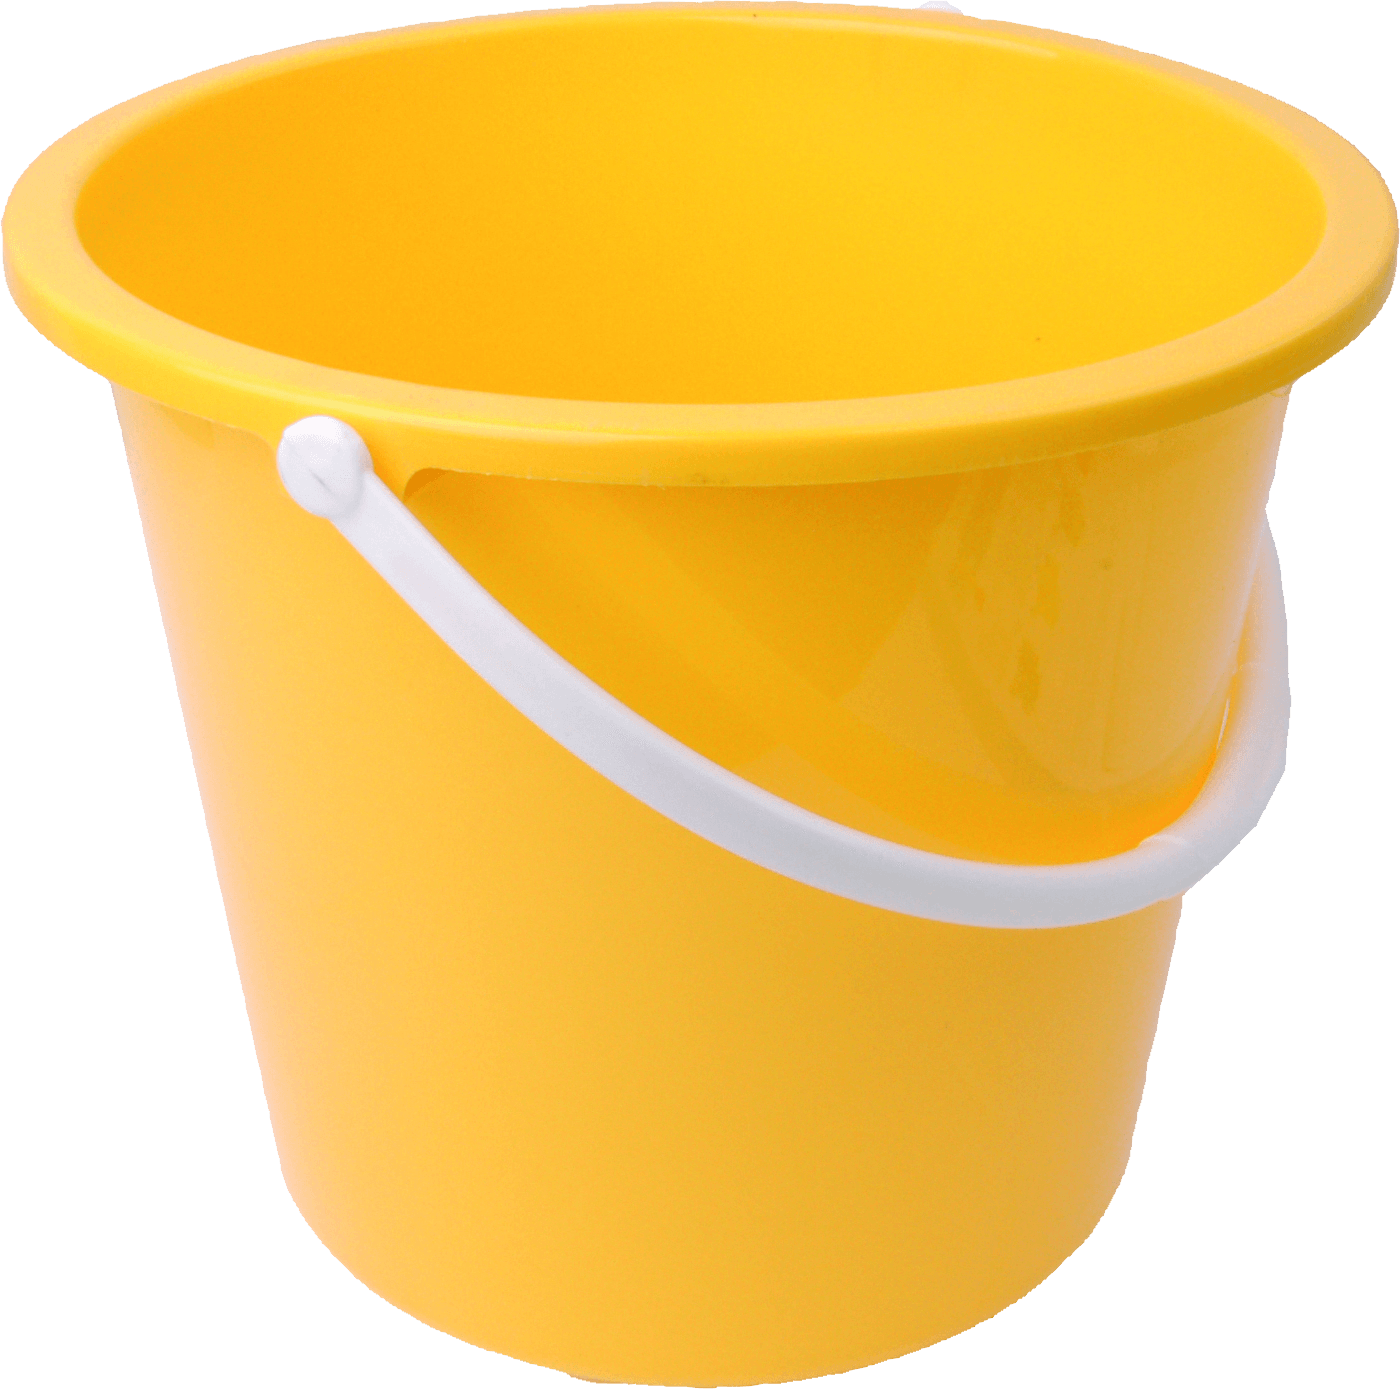 Bucket png. Yellow transparent stickpng